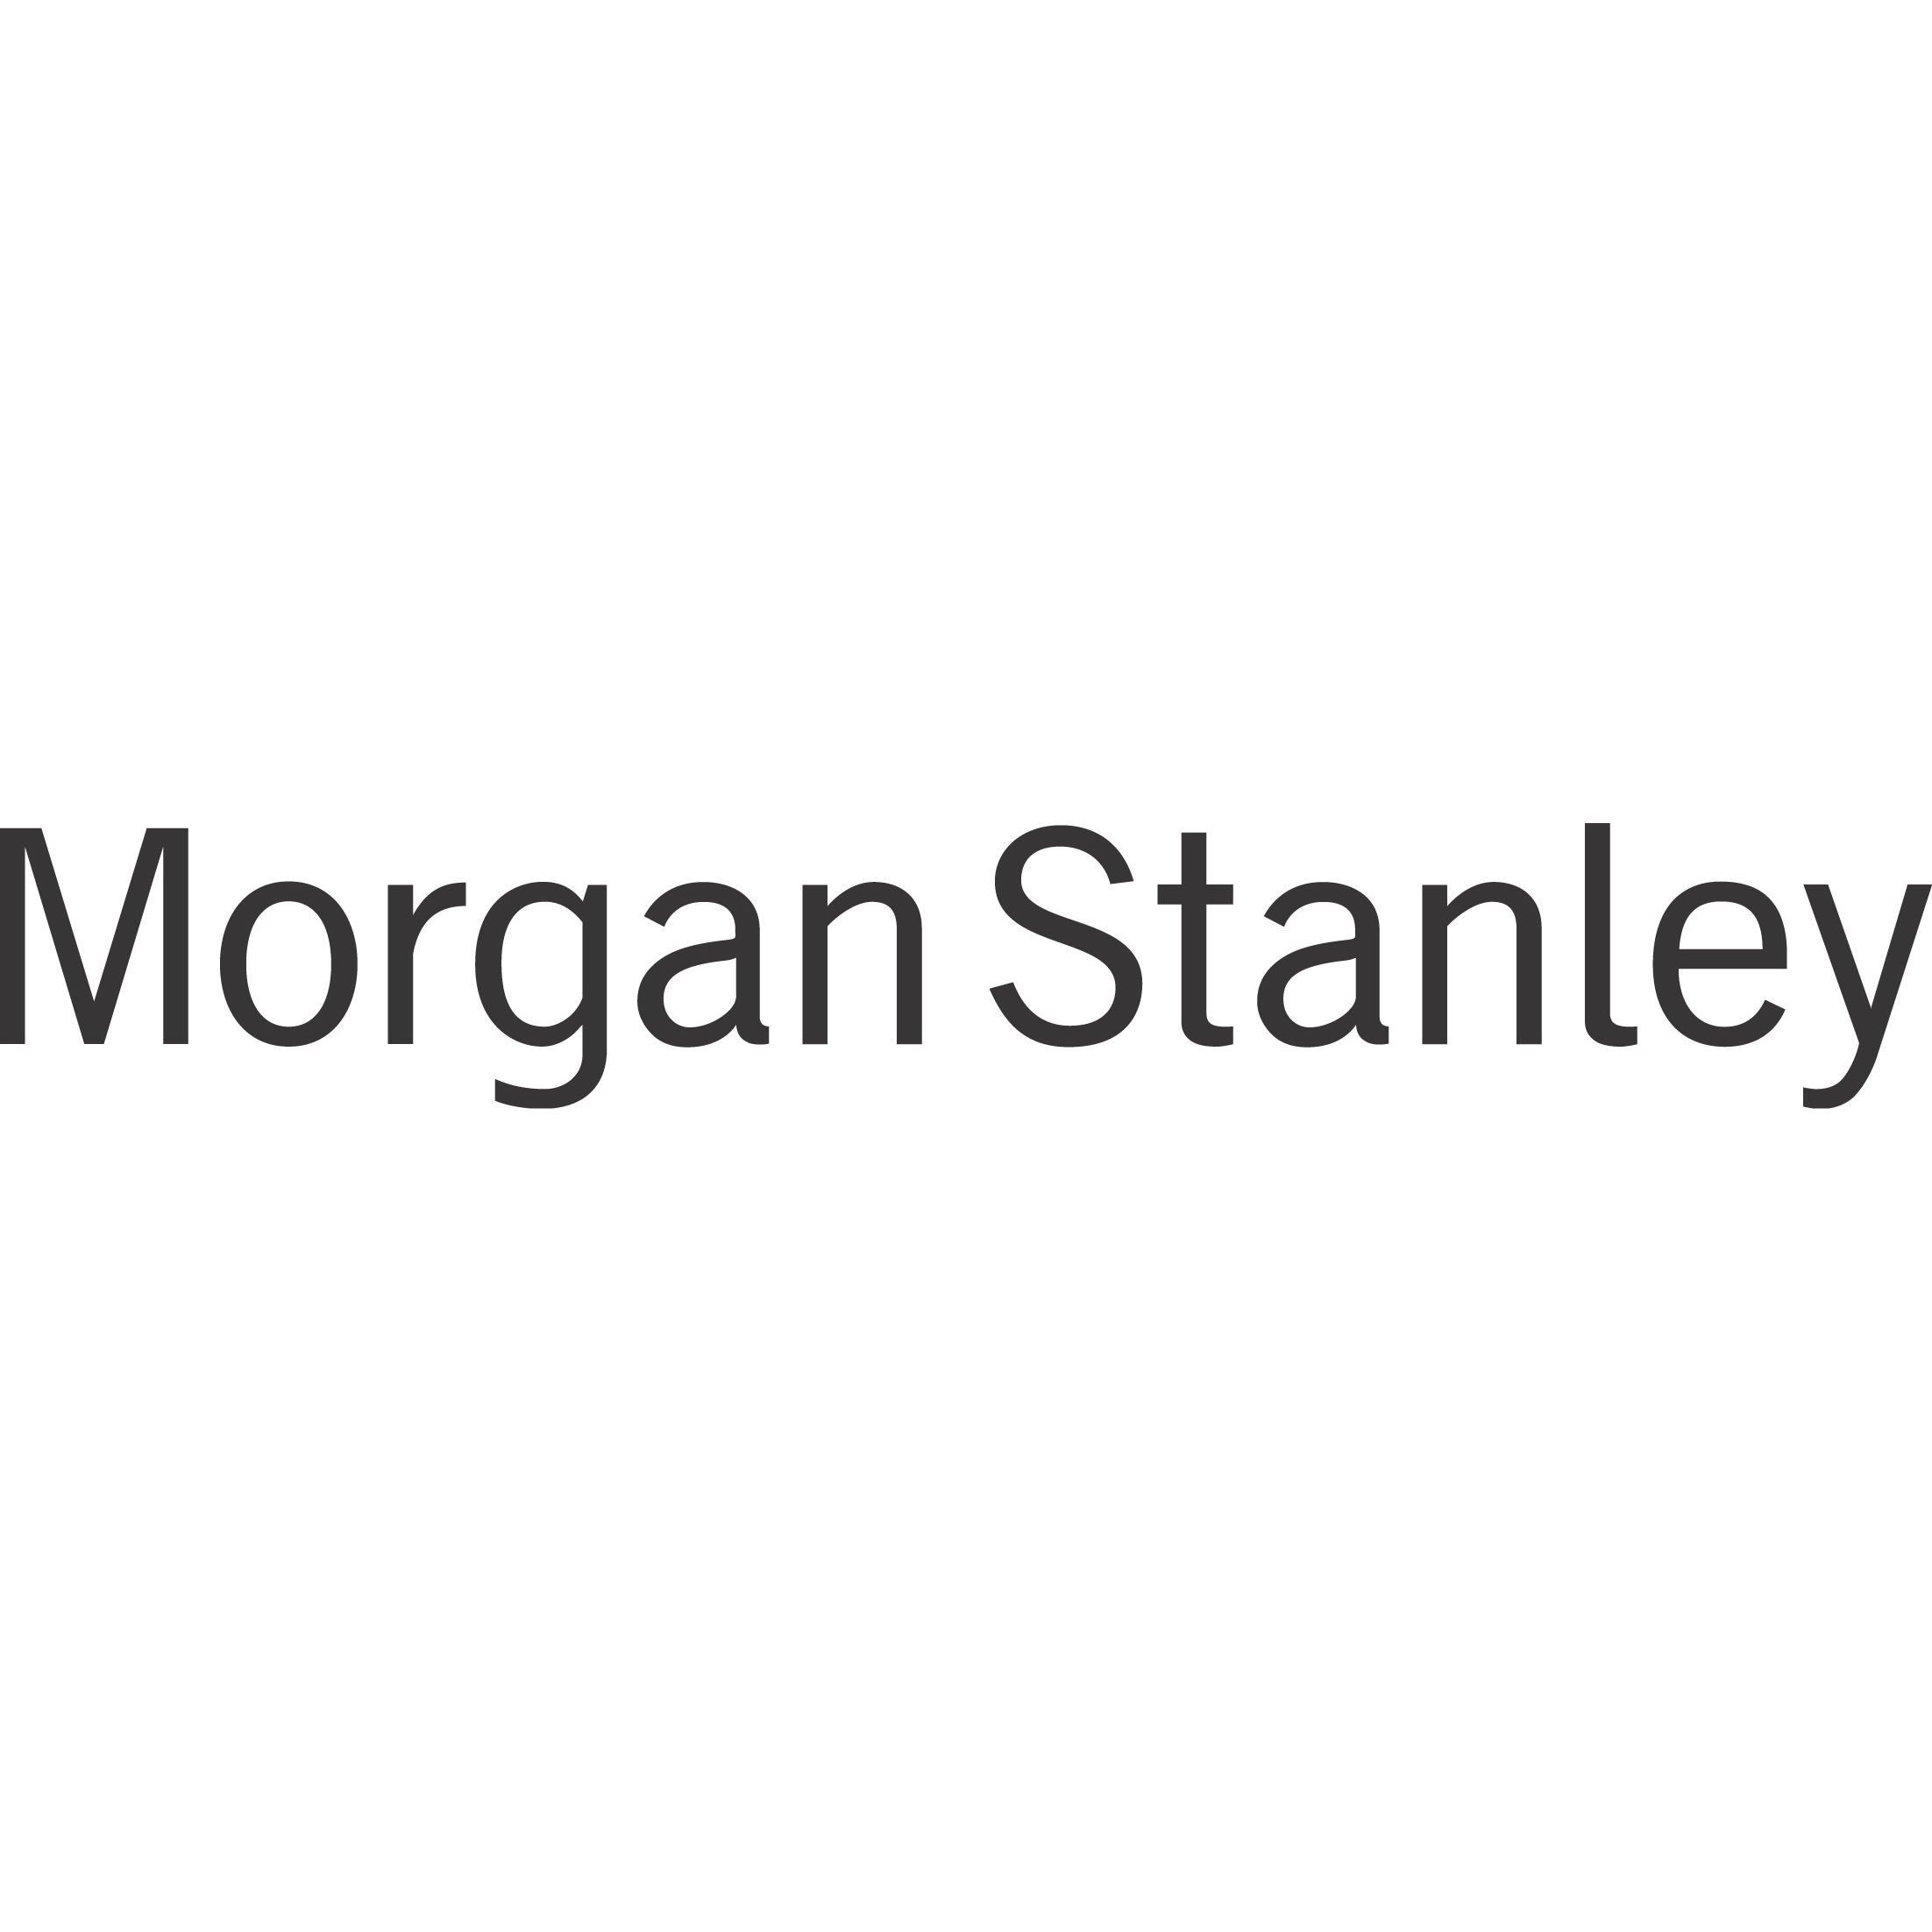 Chris Osborne - Morgan Stanley | Financial Advisor in Reno,Nevada